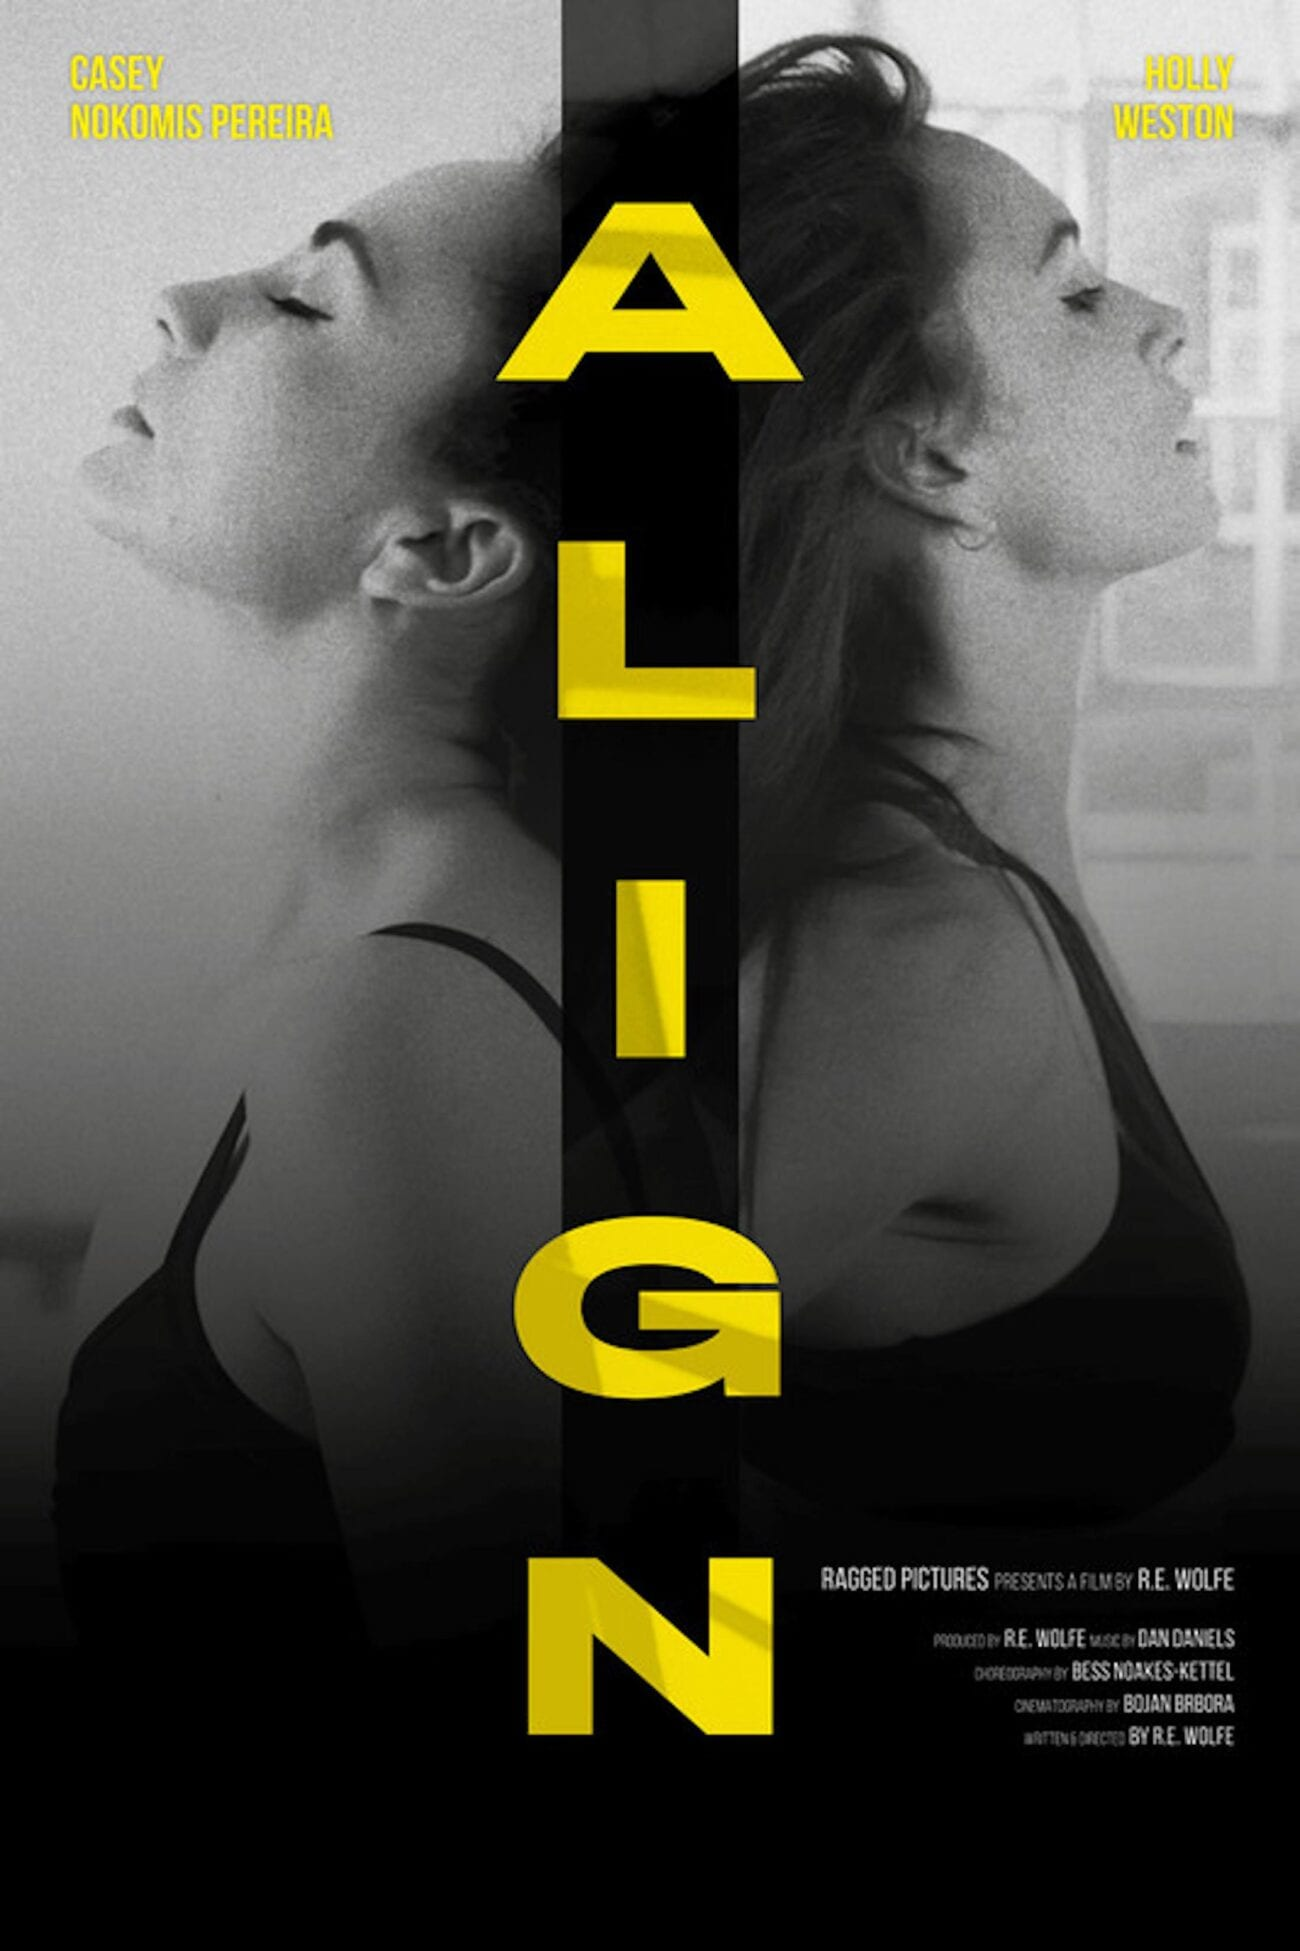 Align focuses on professional ballet dancer Casey Nokomis Pereira and actress/dancer Holly Weston. Here's what you need to know.